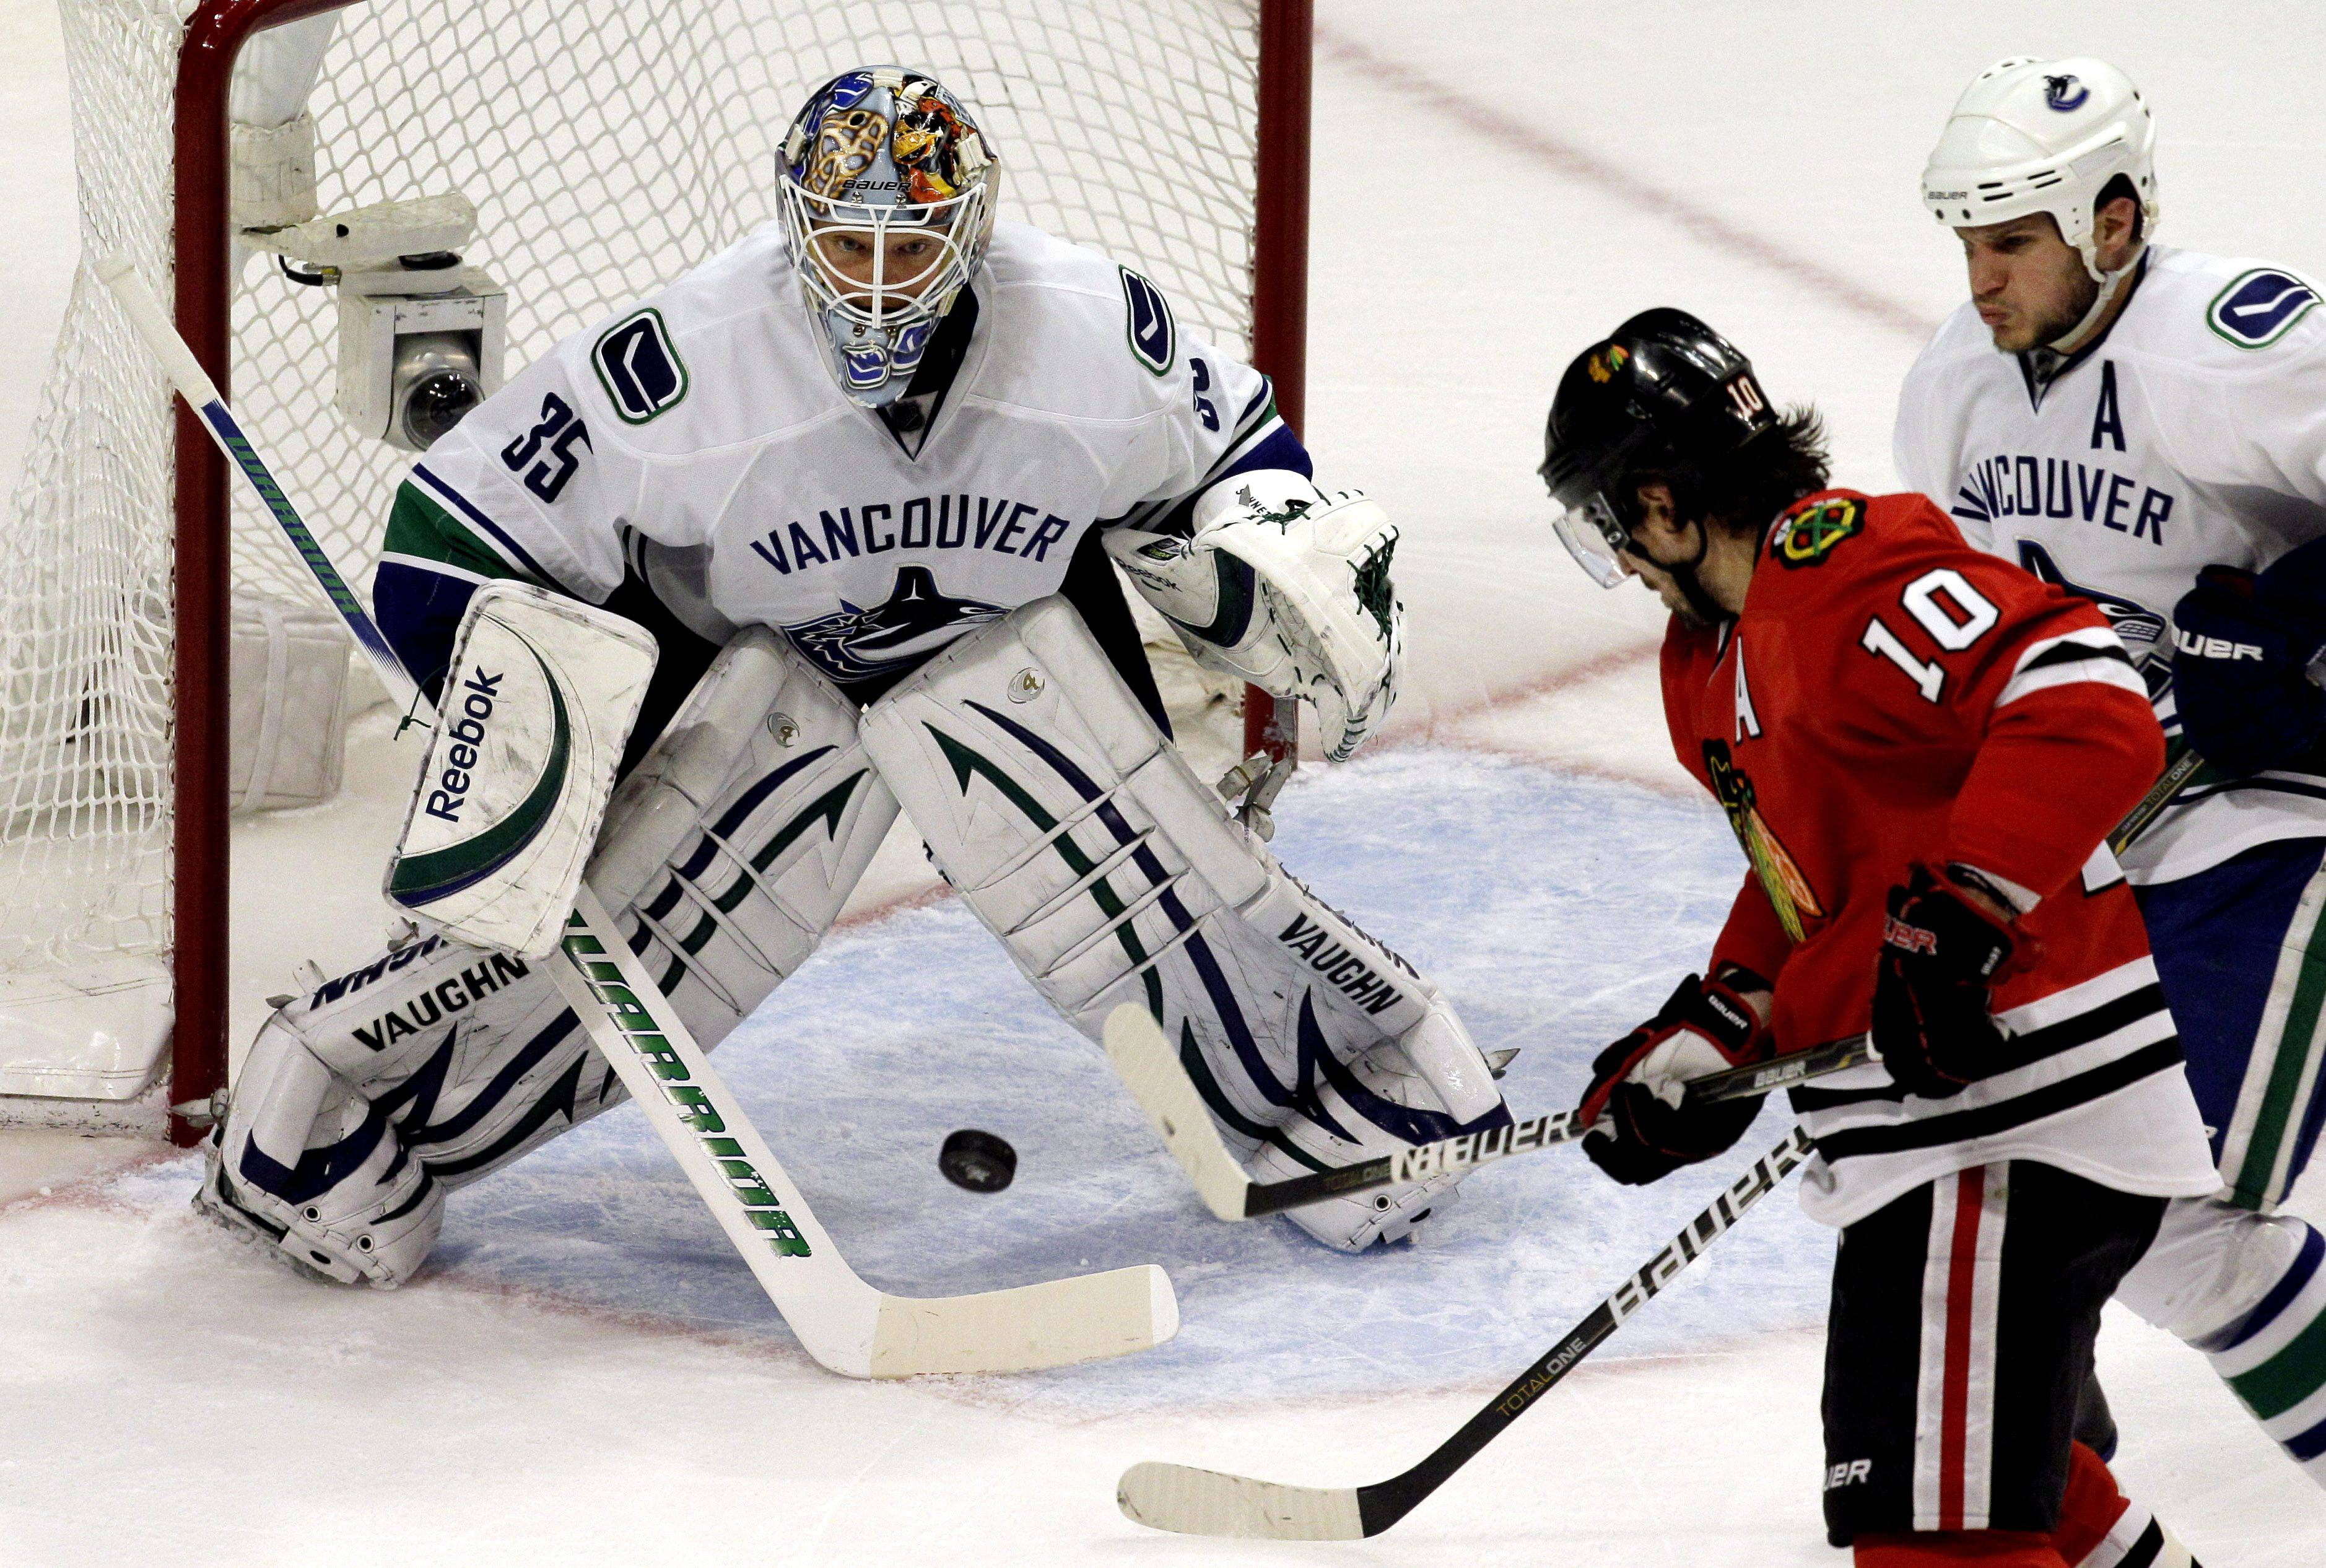 Vancouver Canucks goalie Cory Schneider stops a shot by Chicago Blackhawks center Patrick Sharp (10) during the first period. At right is Vancouver Canucks defenseman Kevin Bieksa.